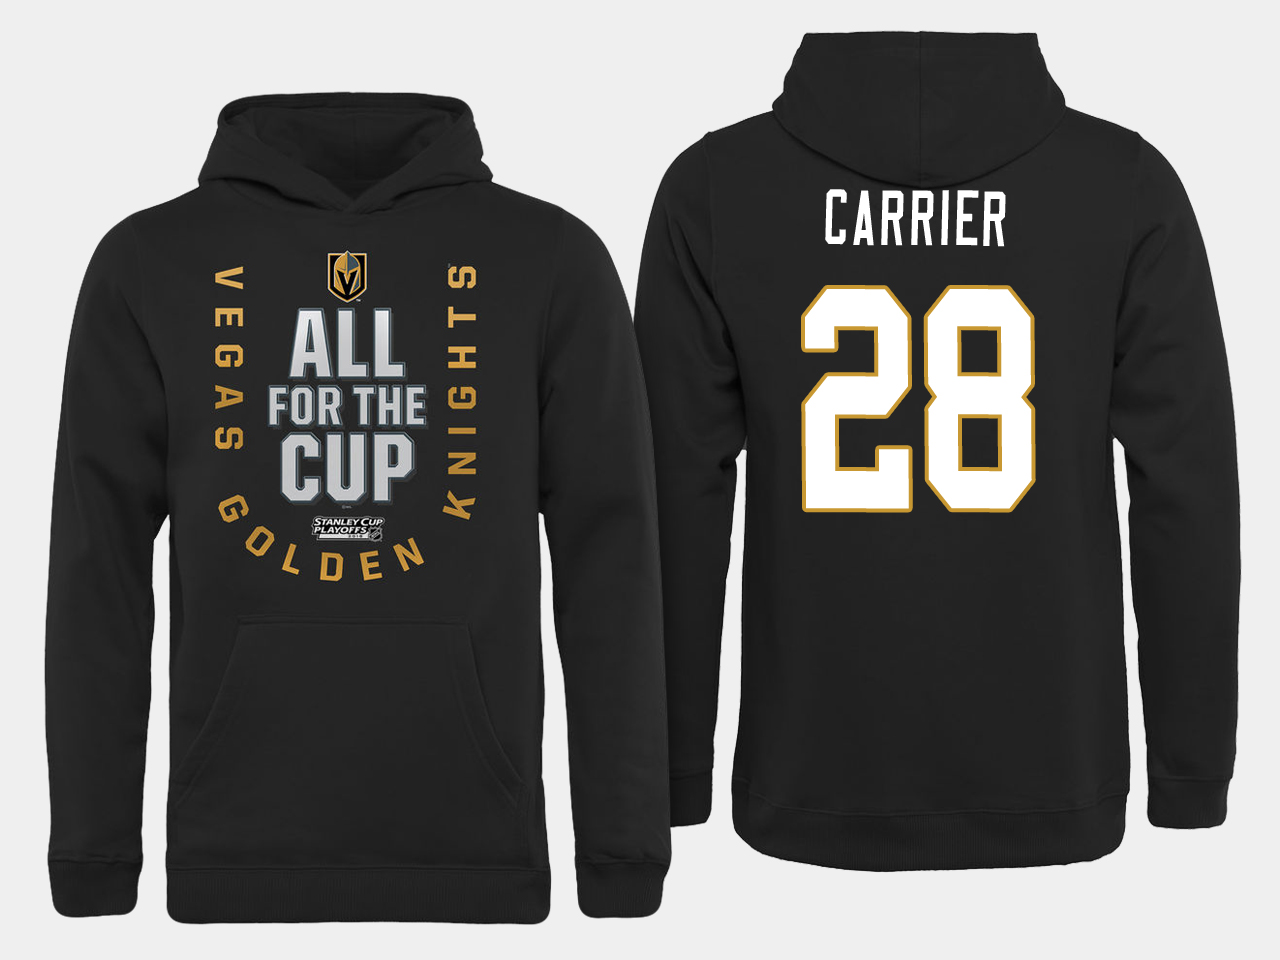 Men NHL Vegas Golden Knights 28 Carrier All for the Cup hoodie